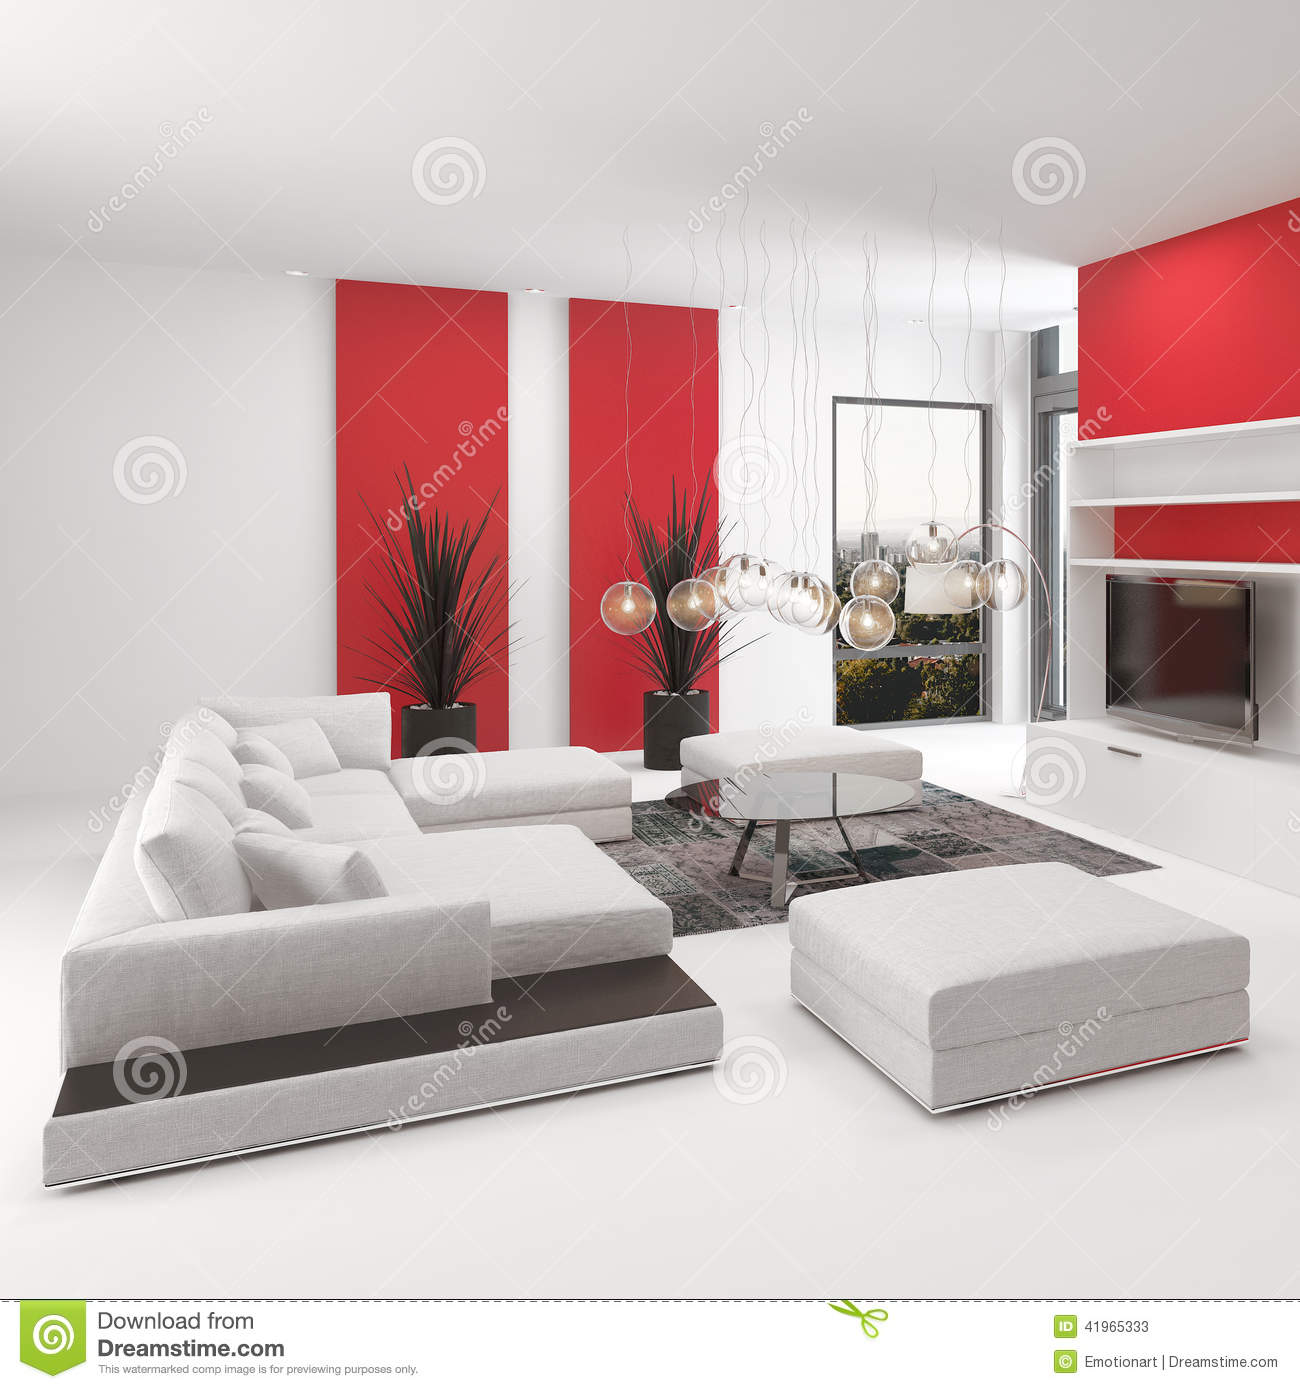 Modern living room interior with vivid red accents stock for Modern living room red